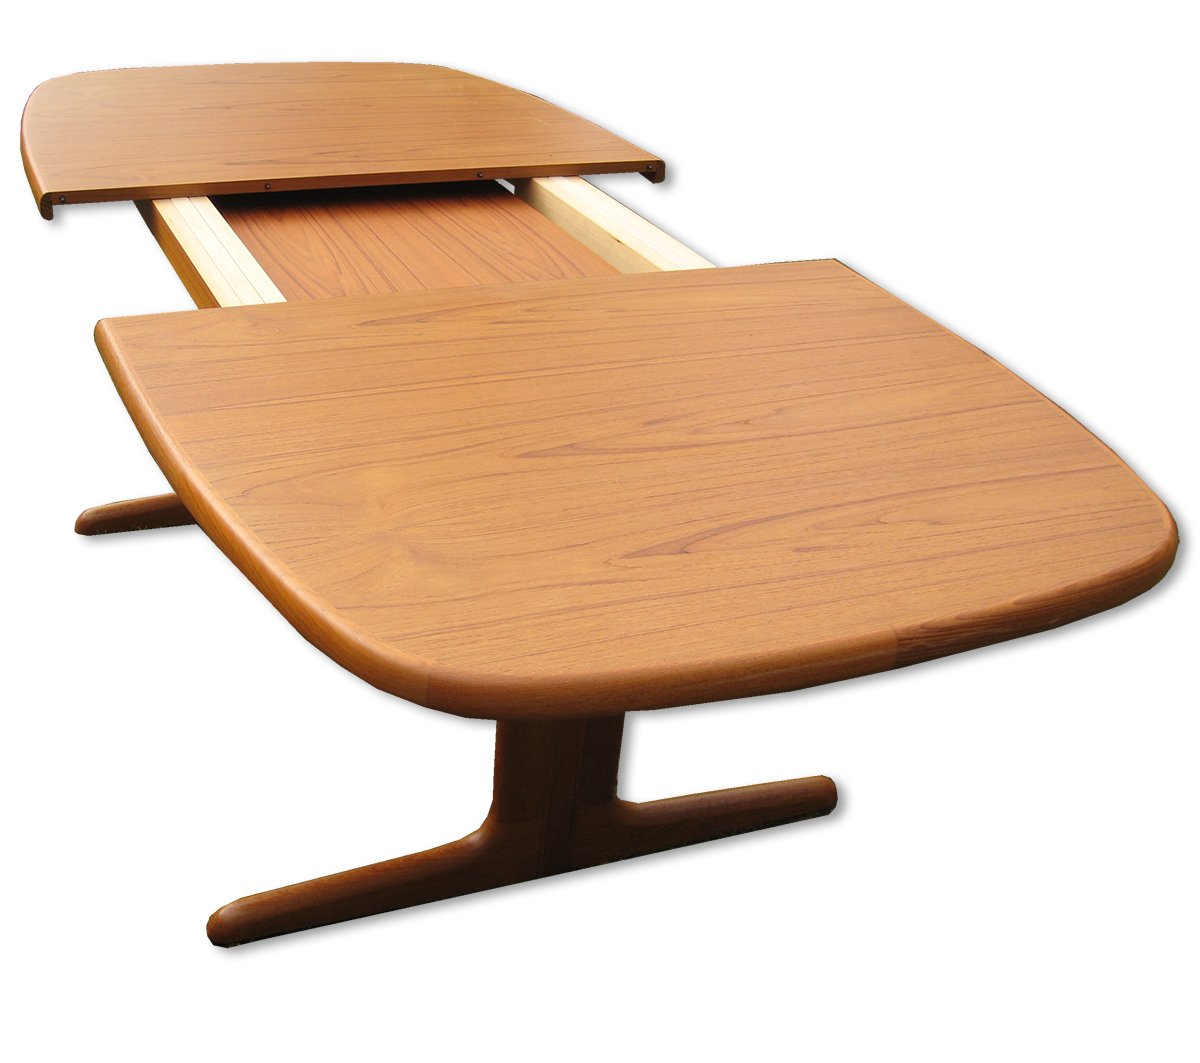 Danish Extendable Oval Teak Dining Table From Skovby 1970s 4 1 029 00 Price Per Piece